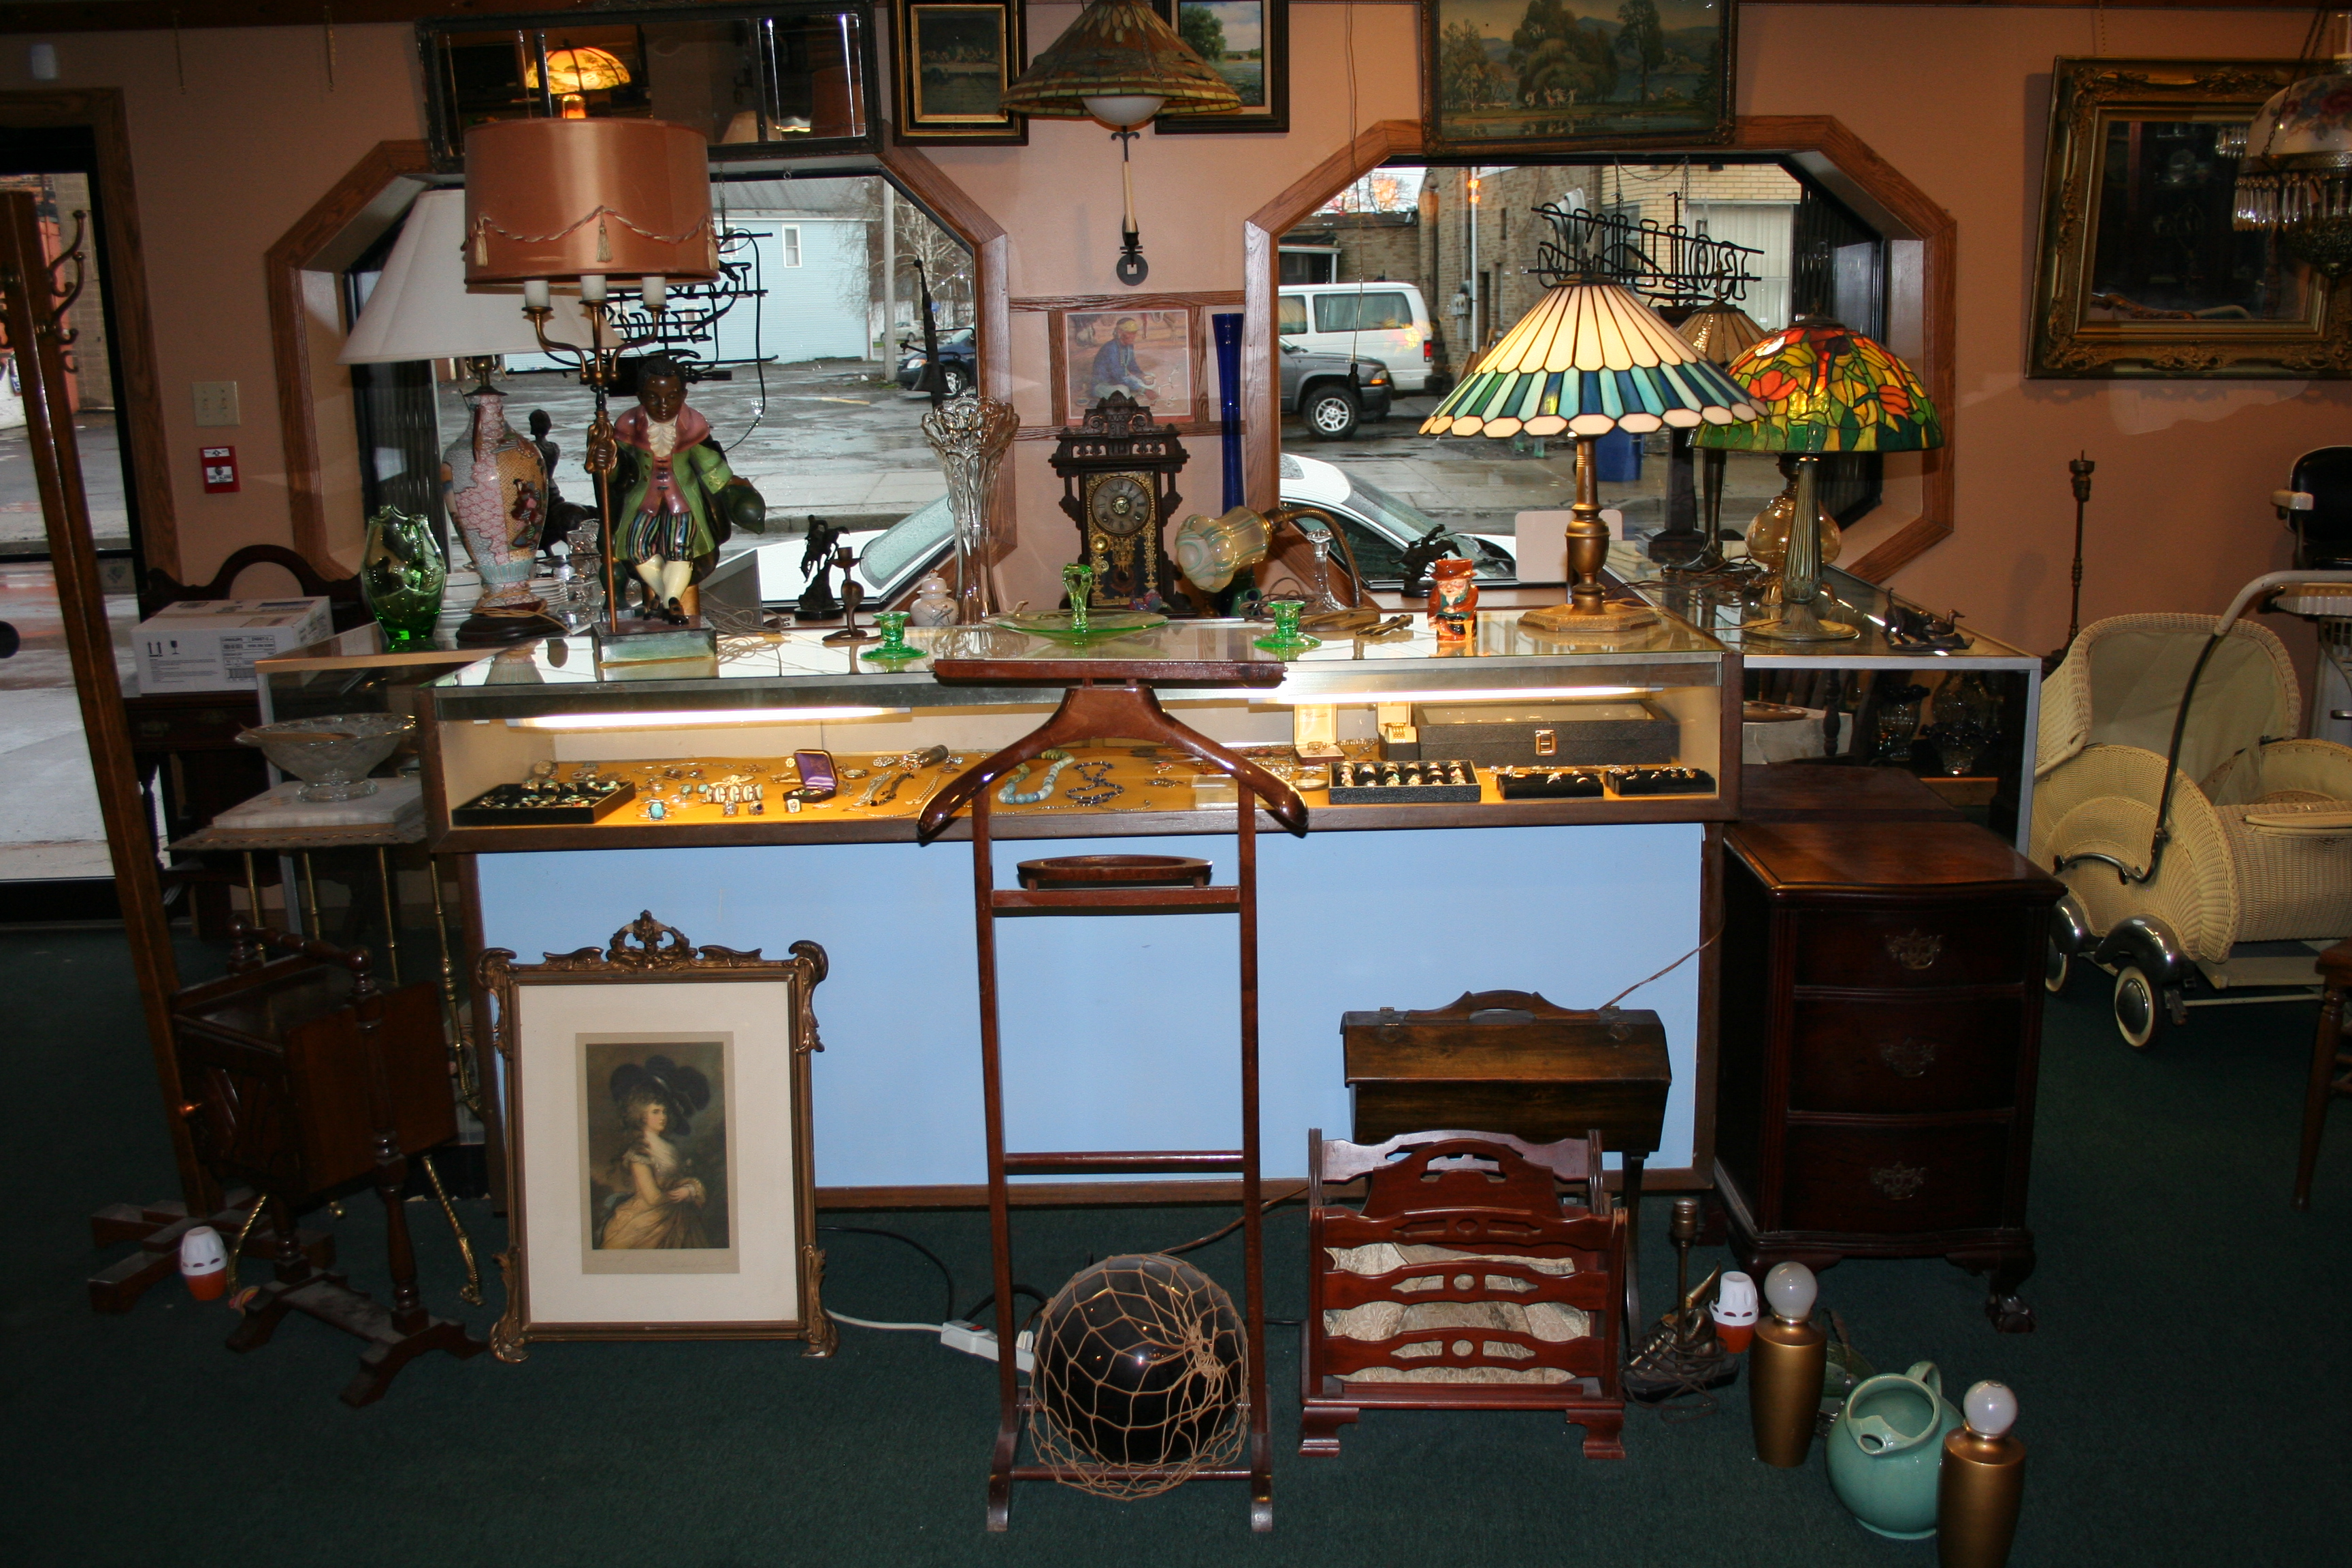 Local Jewelry Stores >> Antiques, Antique Dealer, Vintage Furniture: Buffalo, NY: Side by Side Antiques